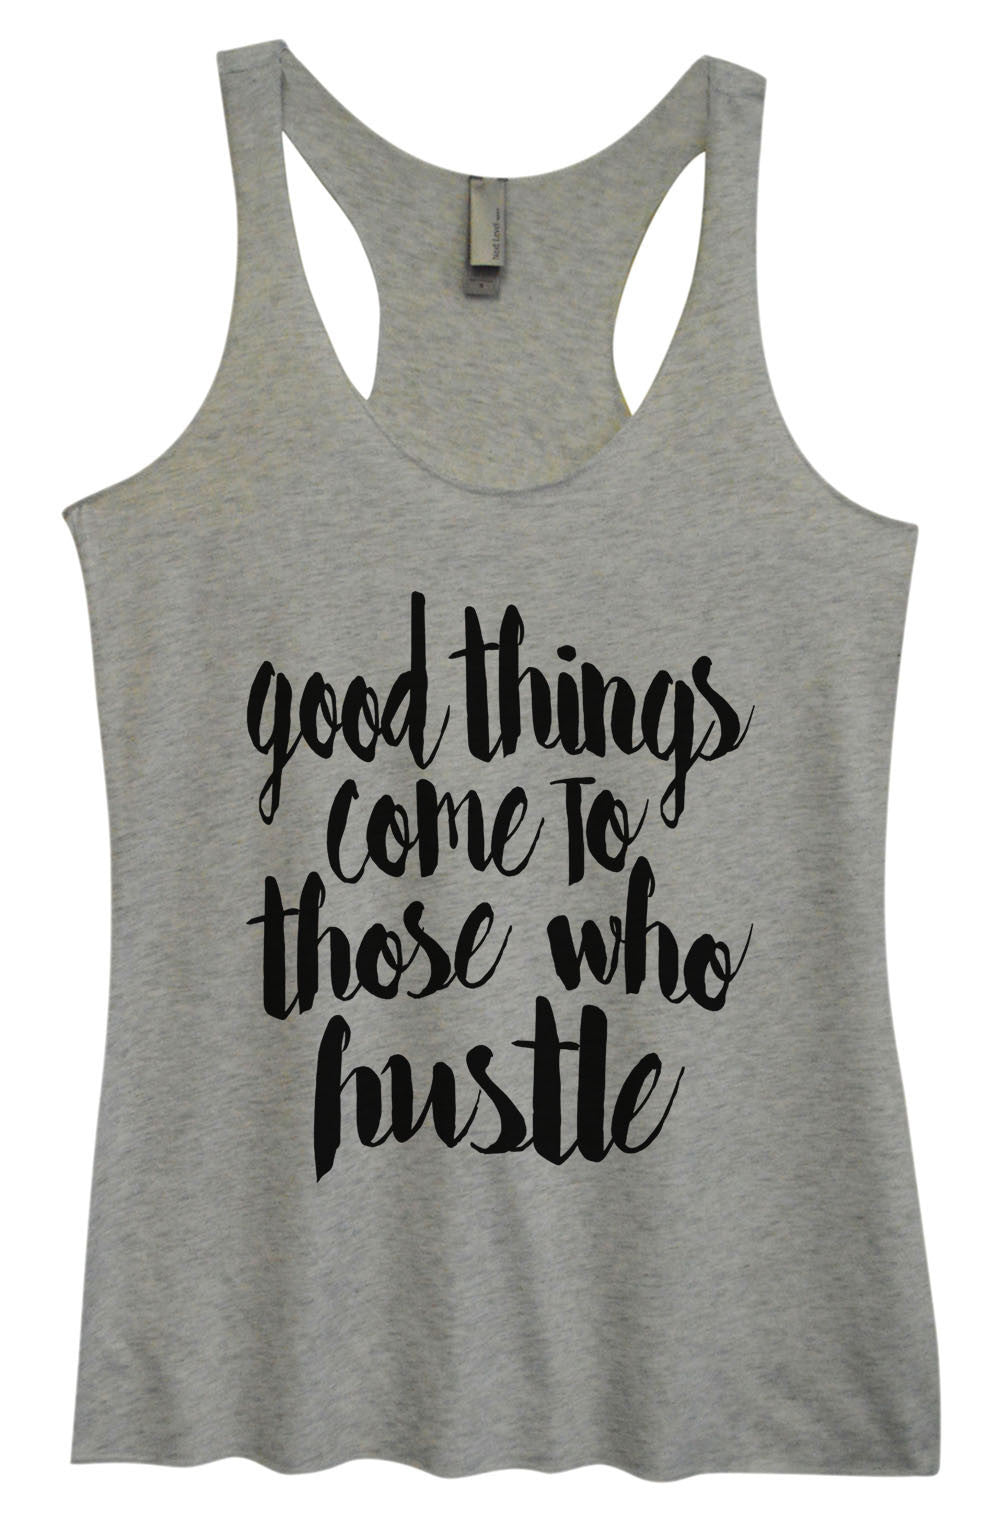 Womens Fashion Triblend Tank Top - Good Things Come To Those Who Hustle - Tri-1478 - Funny Shirts Tank Tops Burnouts and Triblends  - 1